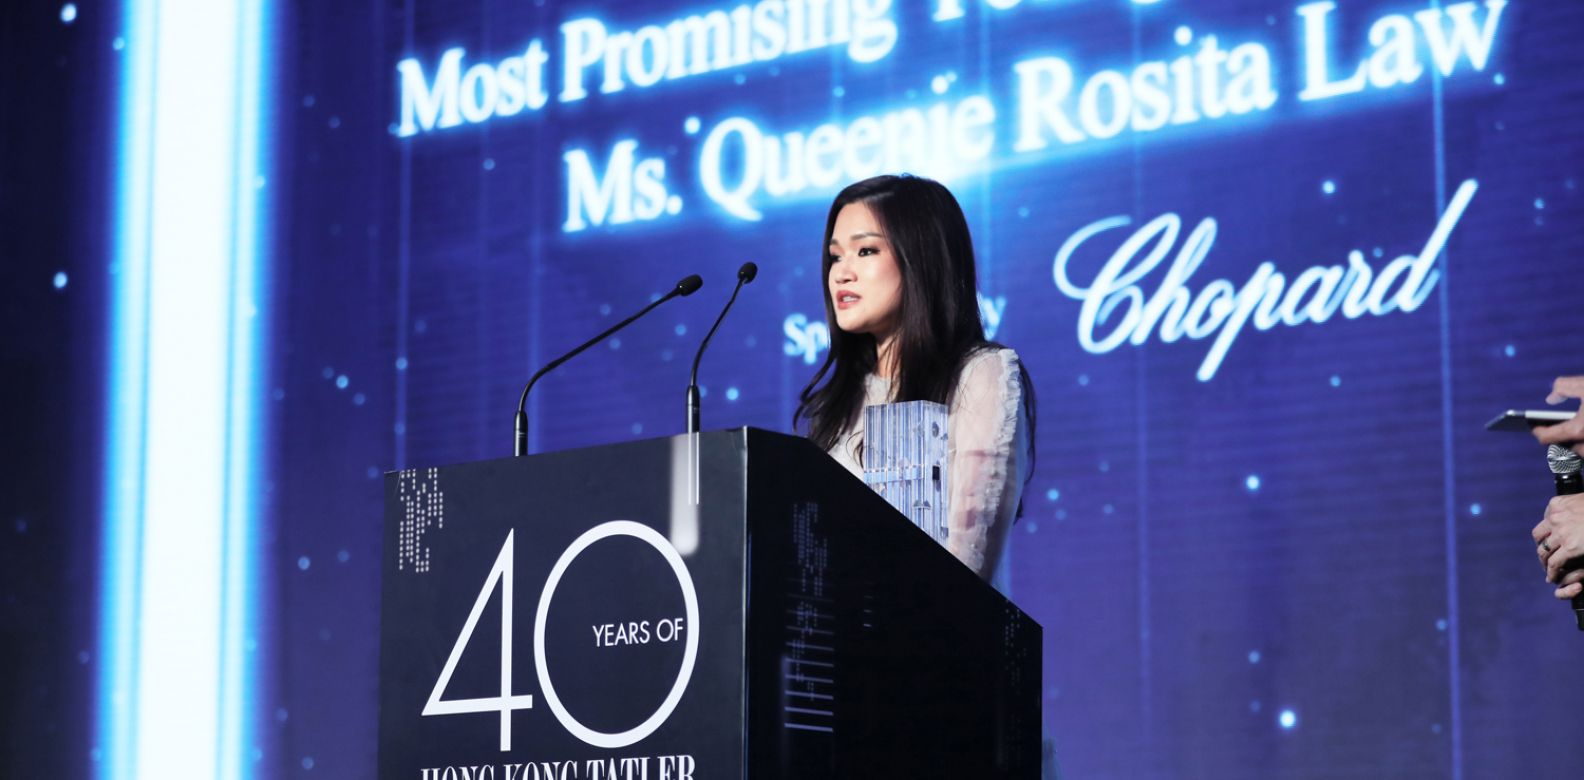 Most Promising Young Lady: Queenie Rosita Law